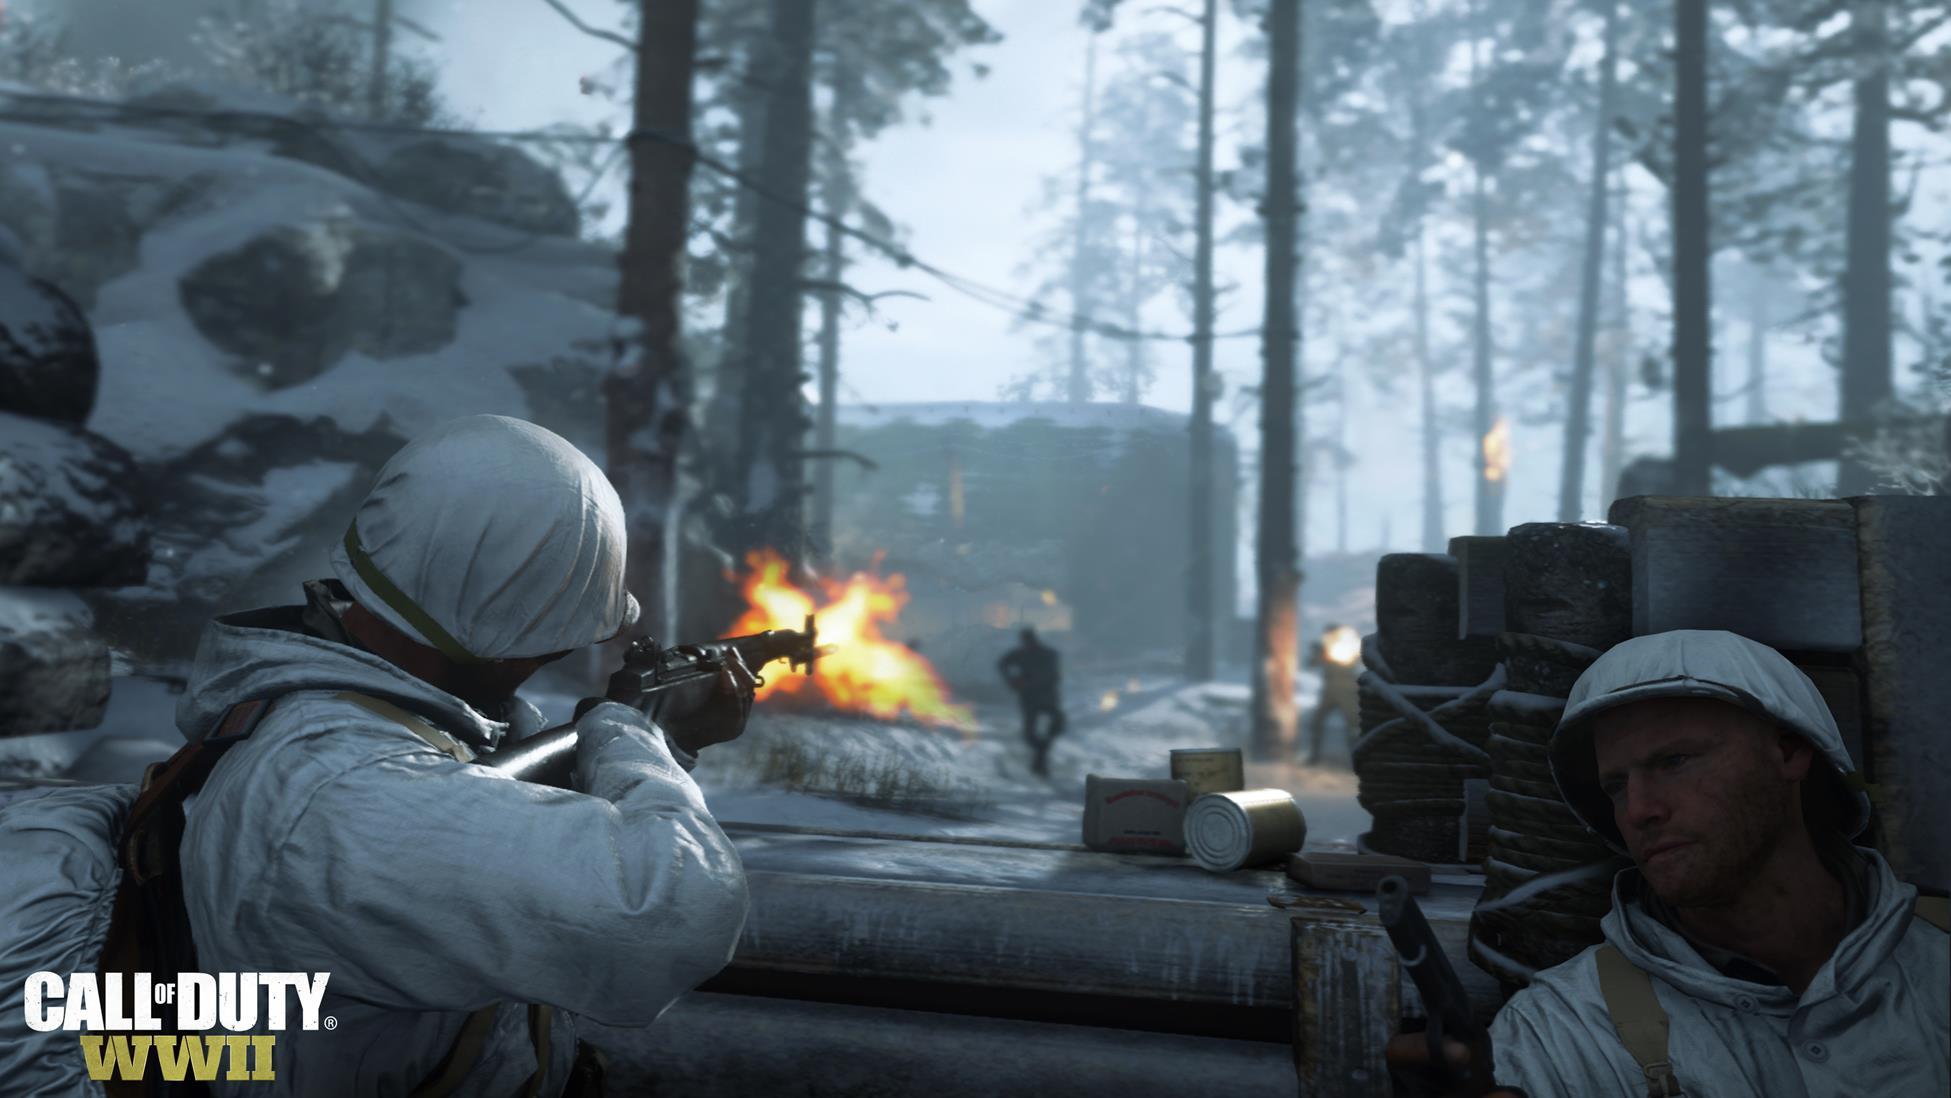 Call of Duty: WWII is going social with its Headquarters mode